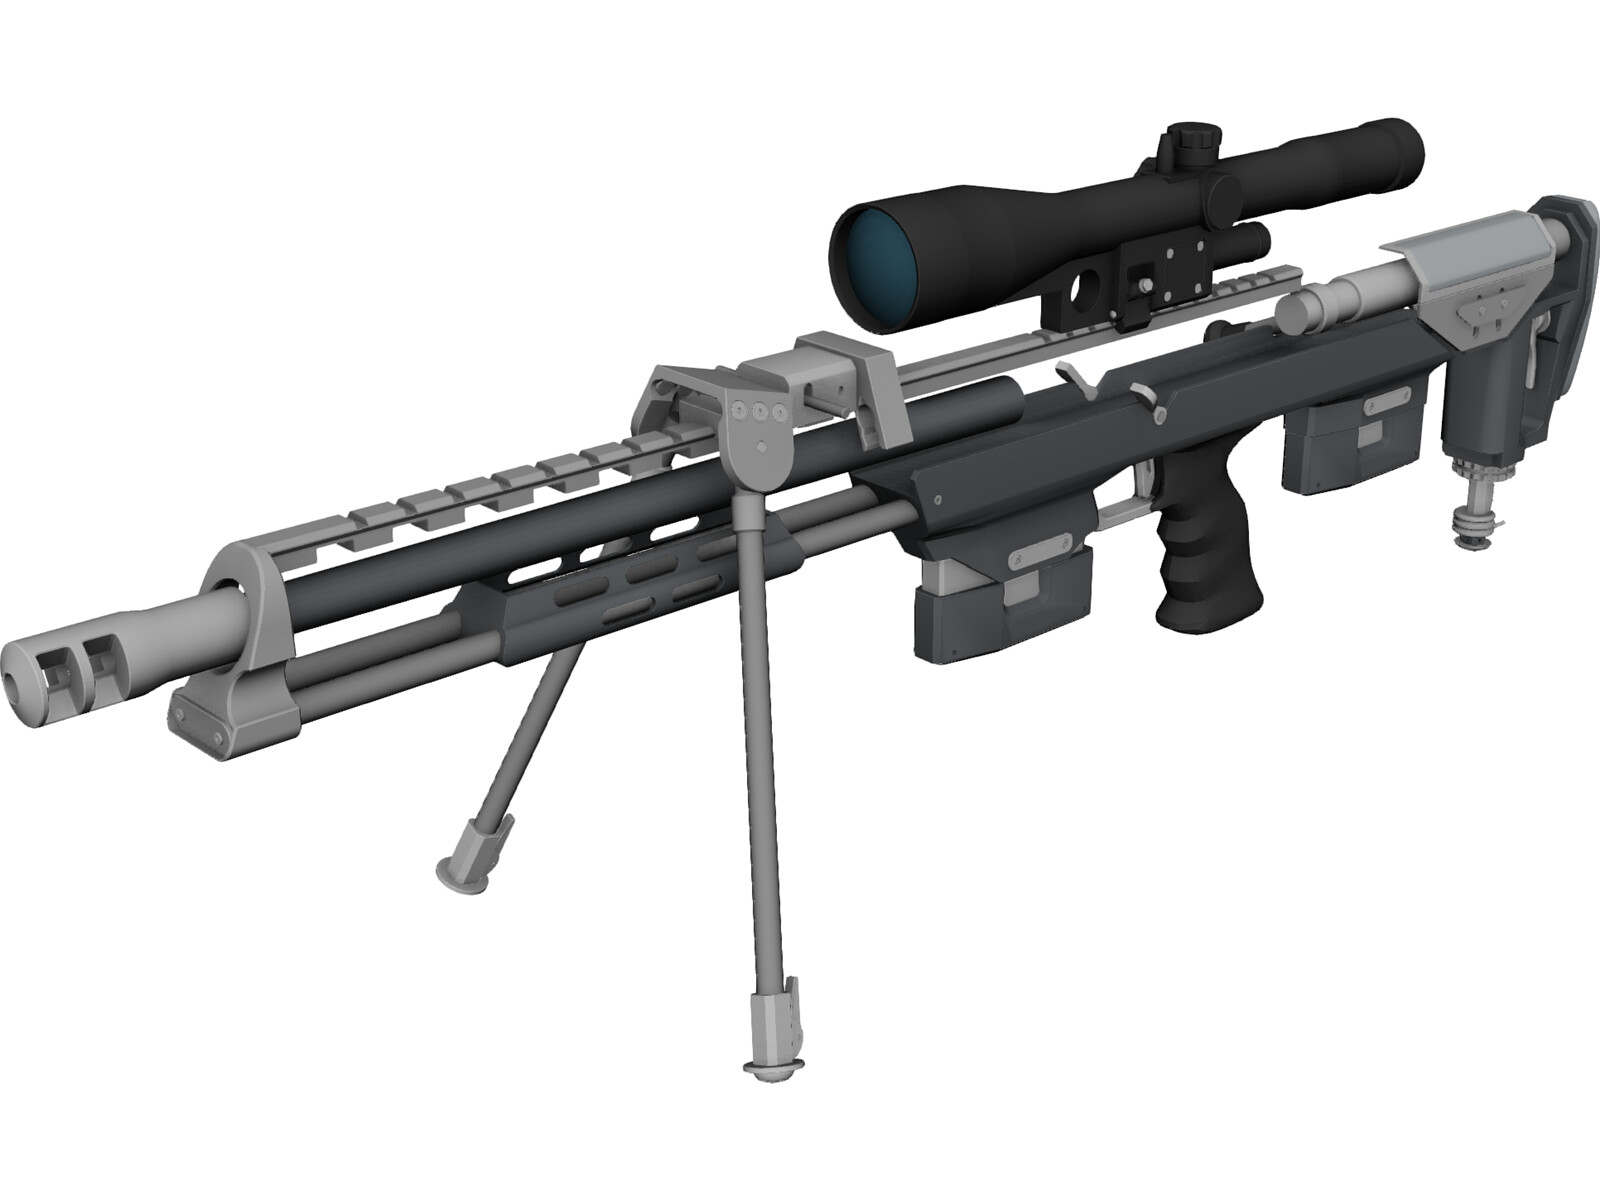 DSR-1 Accuracy International Sniper Rifle (AISR)